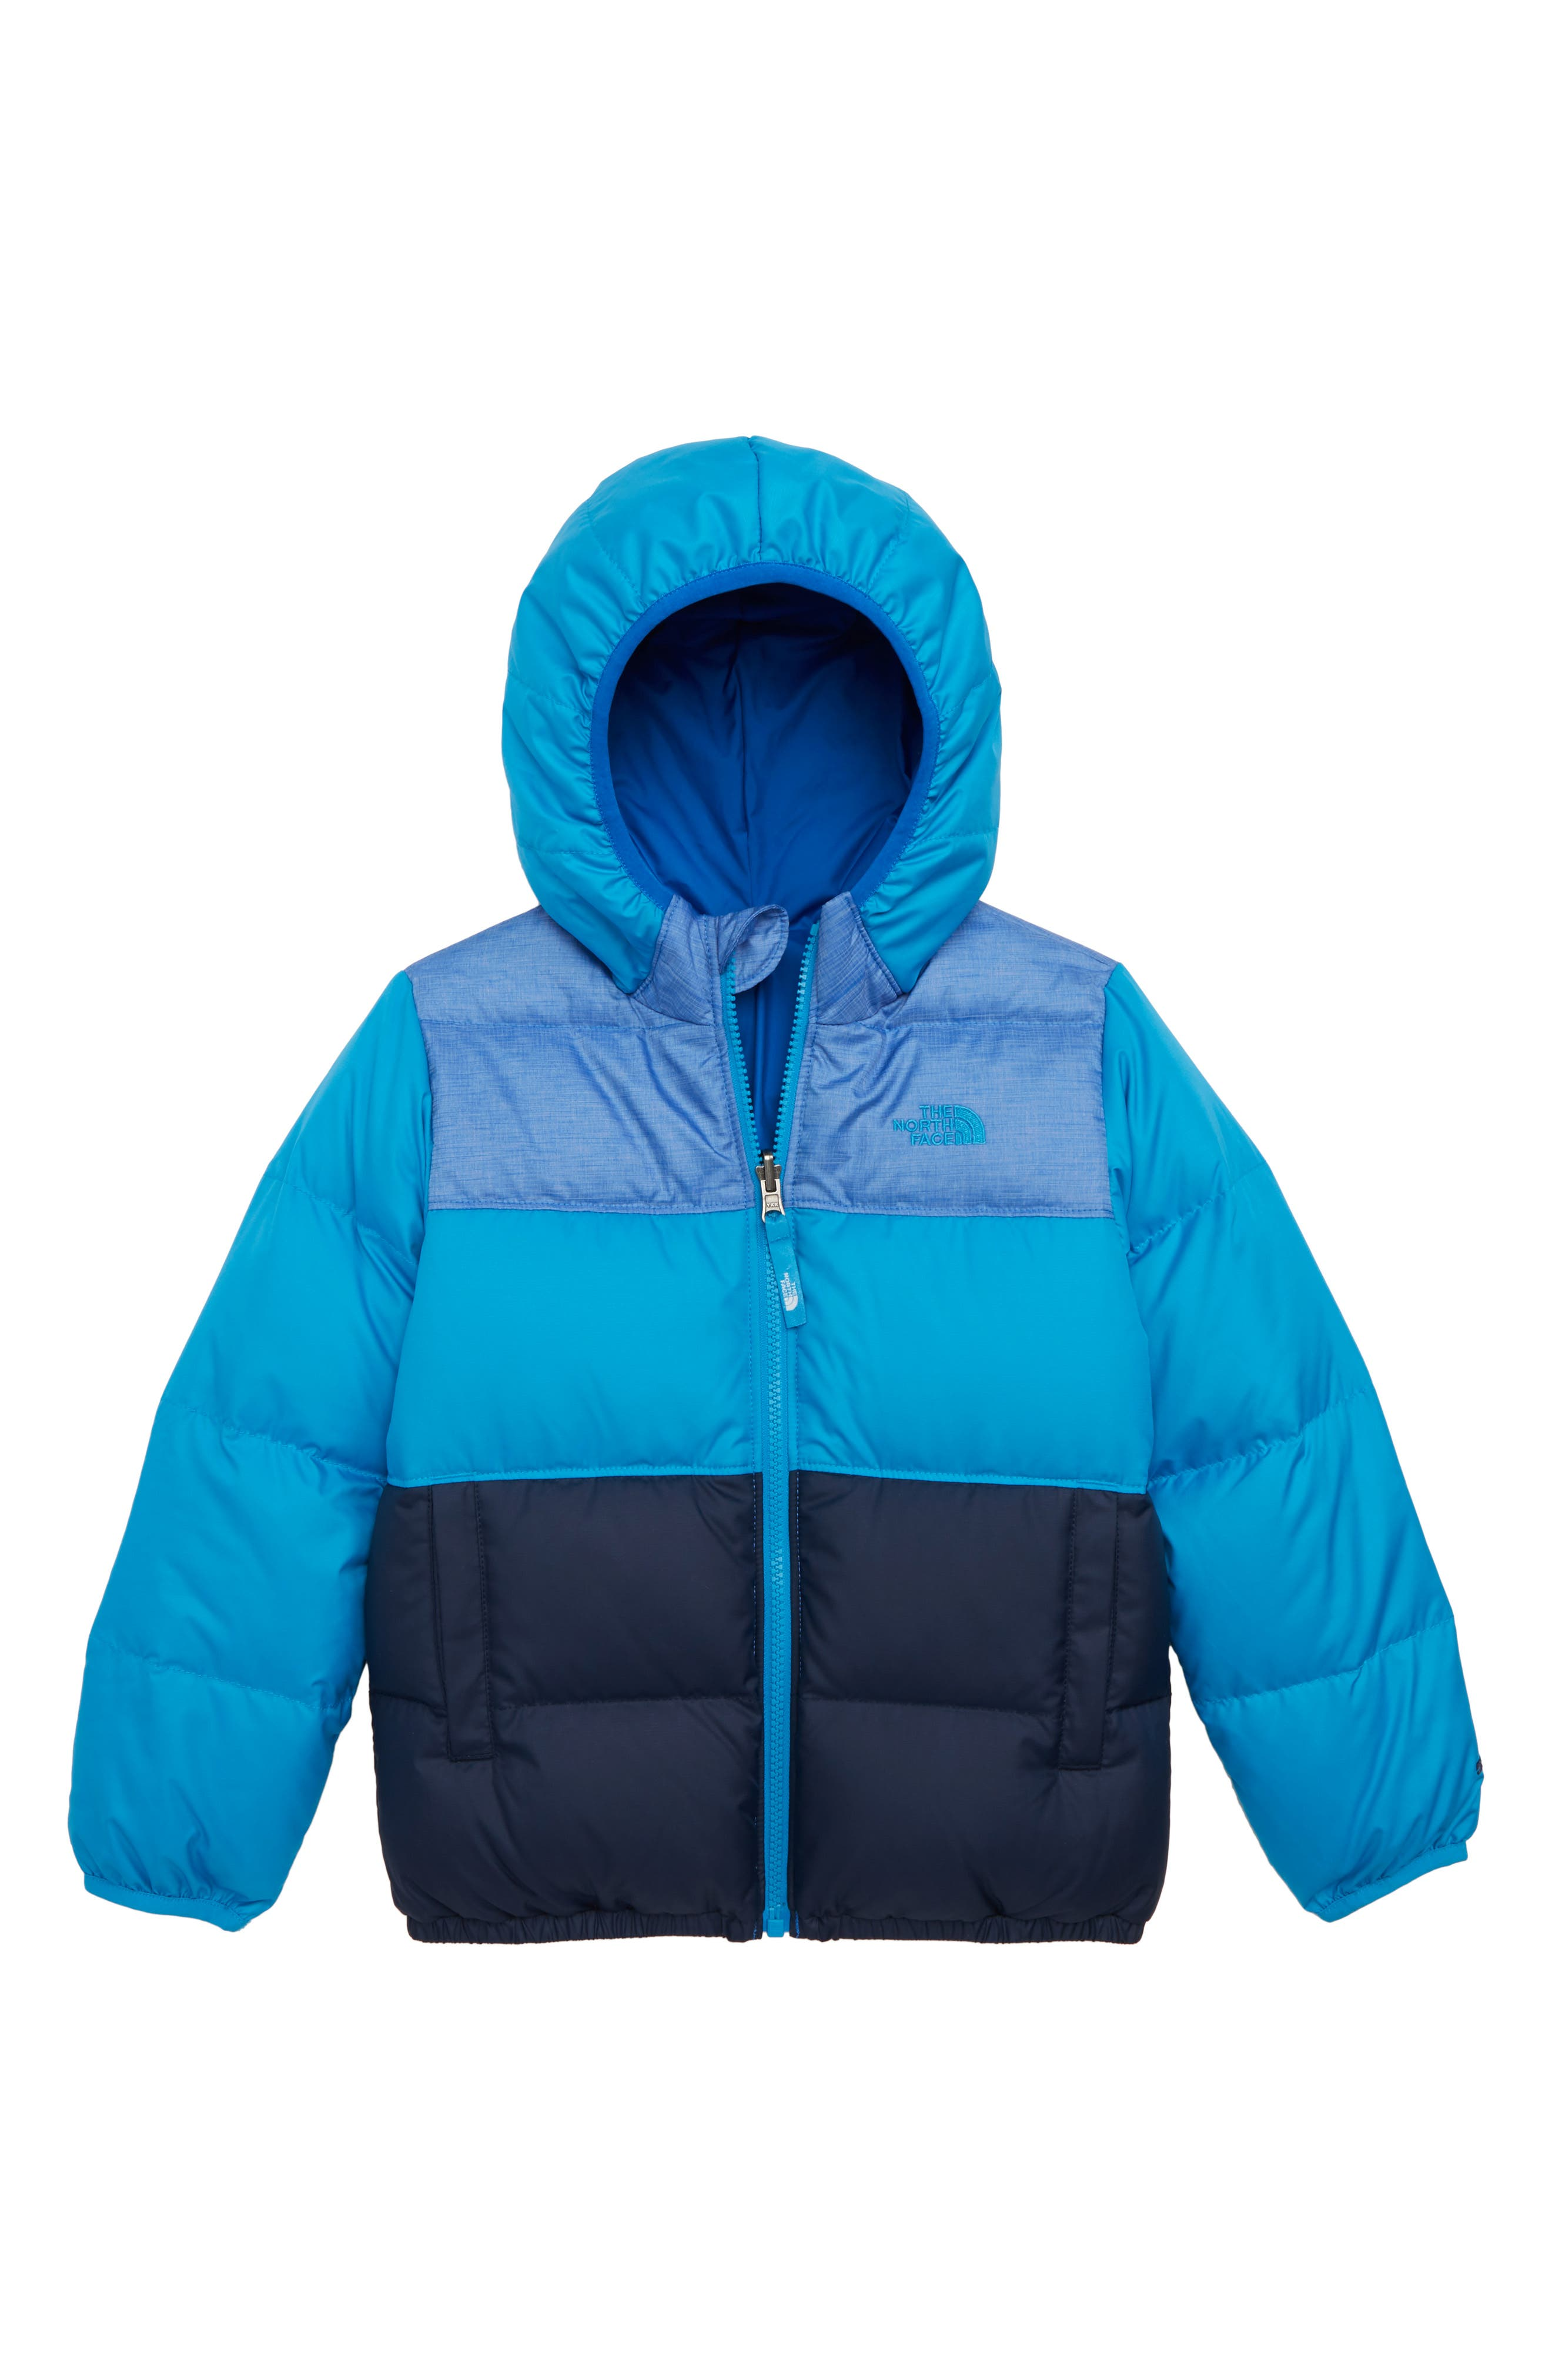 Toddler Boys The North Face Moondoggy Water Repellent Reversible Down Jacket Size 3T  Blue